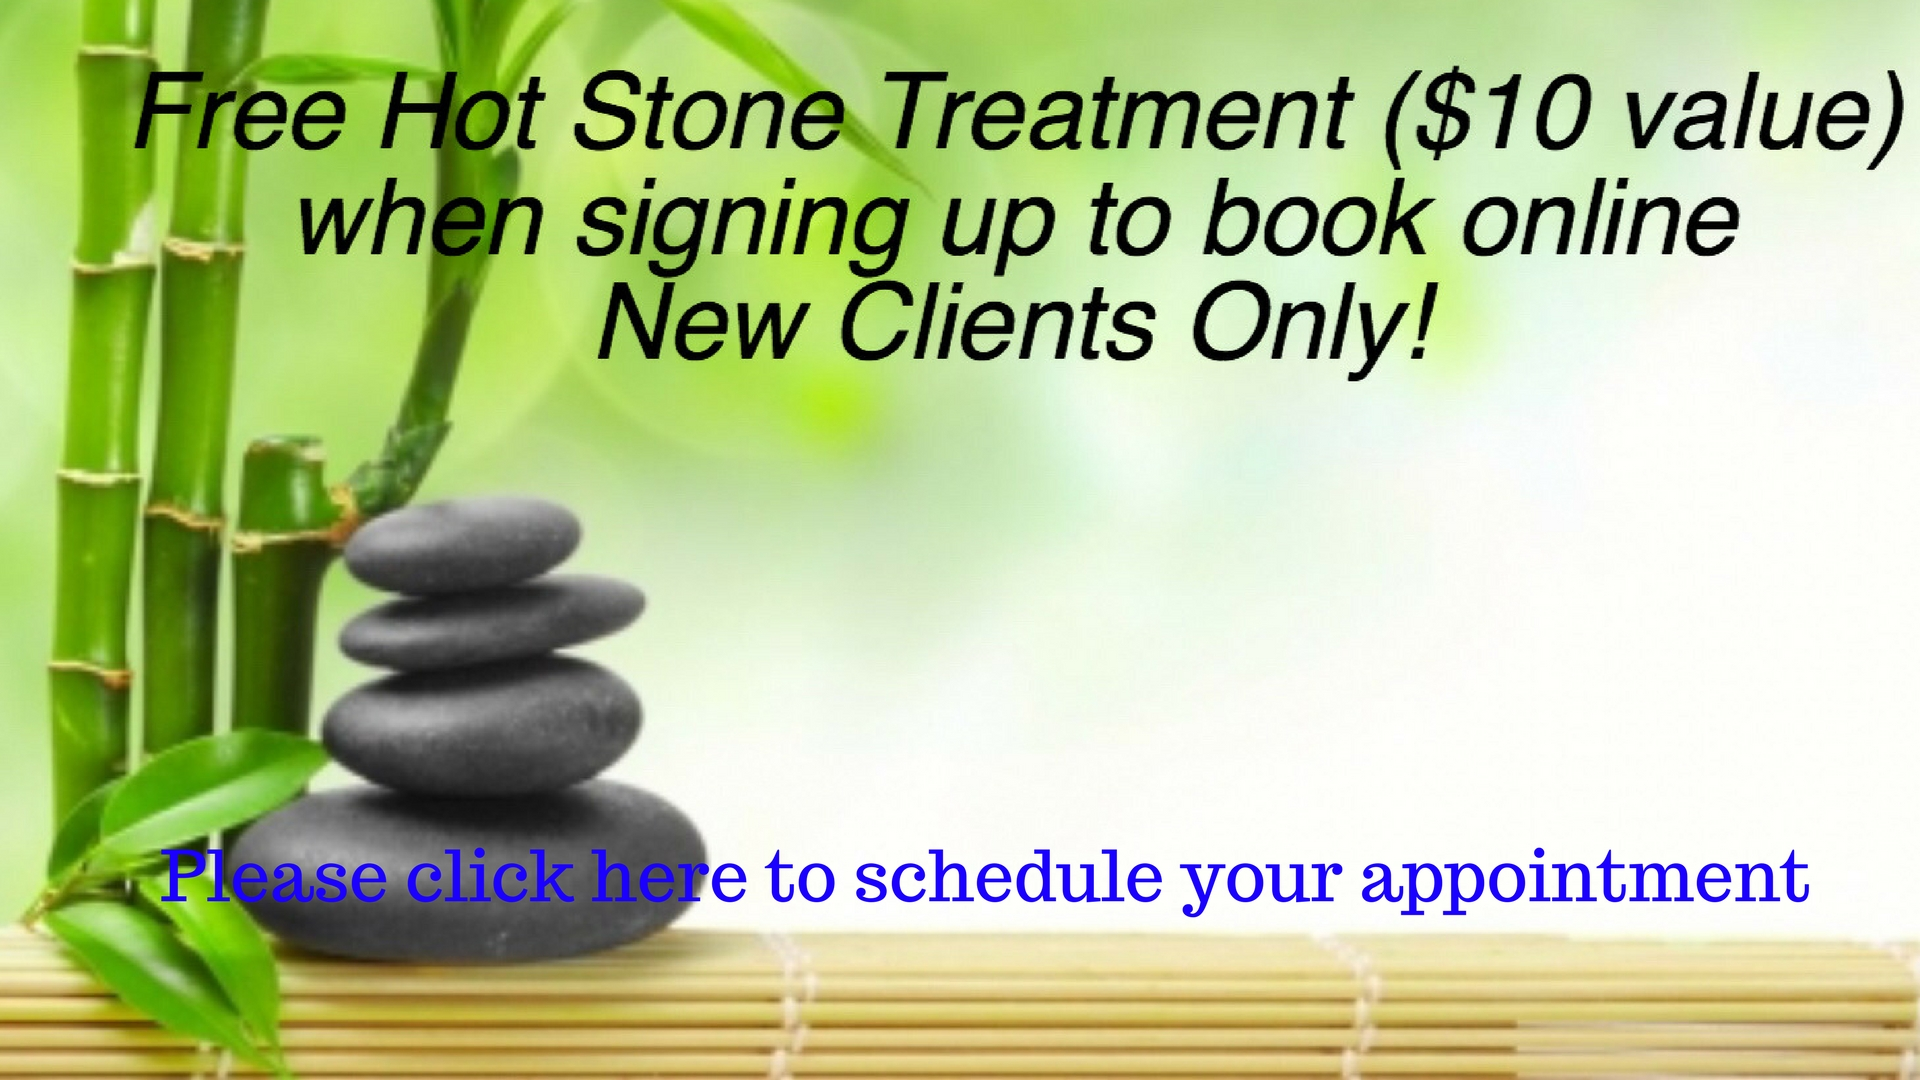 Please Click Here to schedule your apponintment